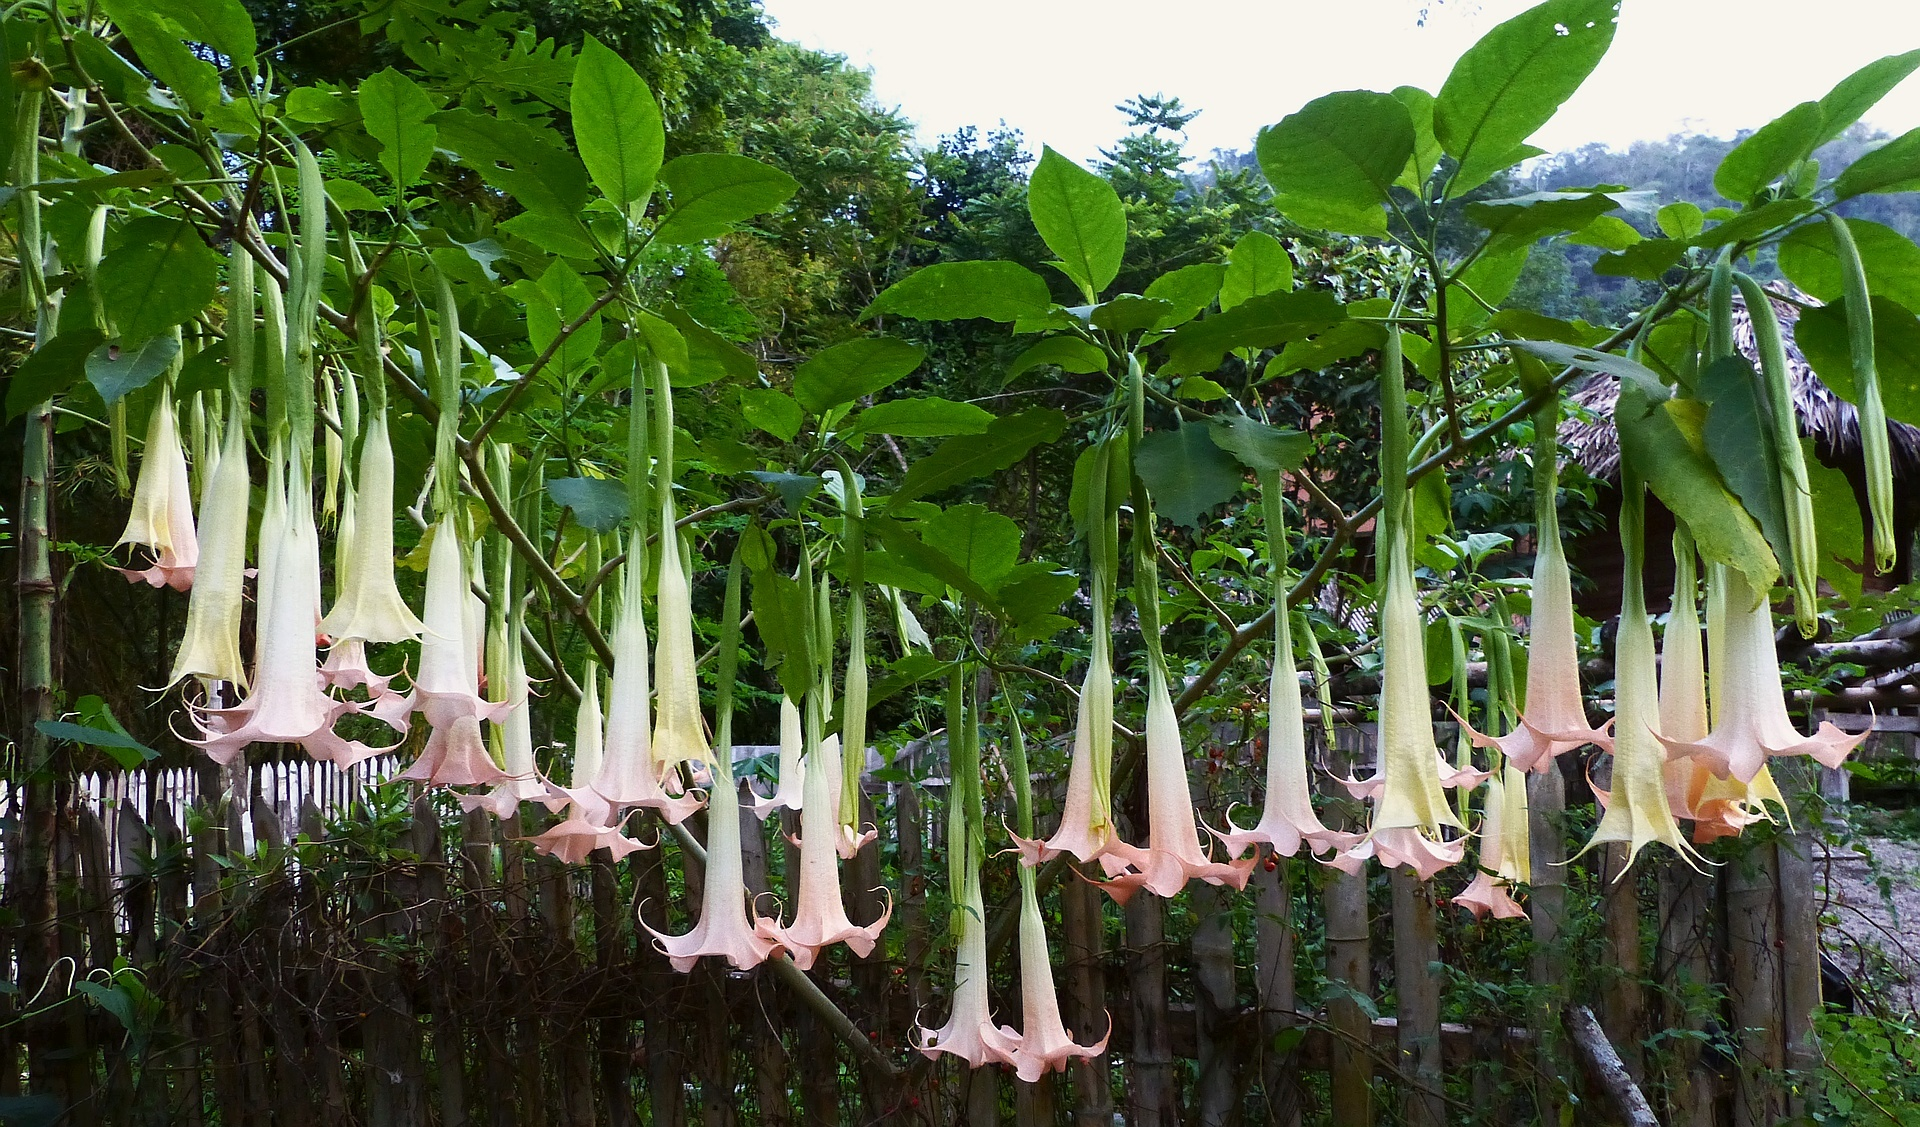 z p2400397 brugmansia how many blossoms